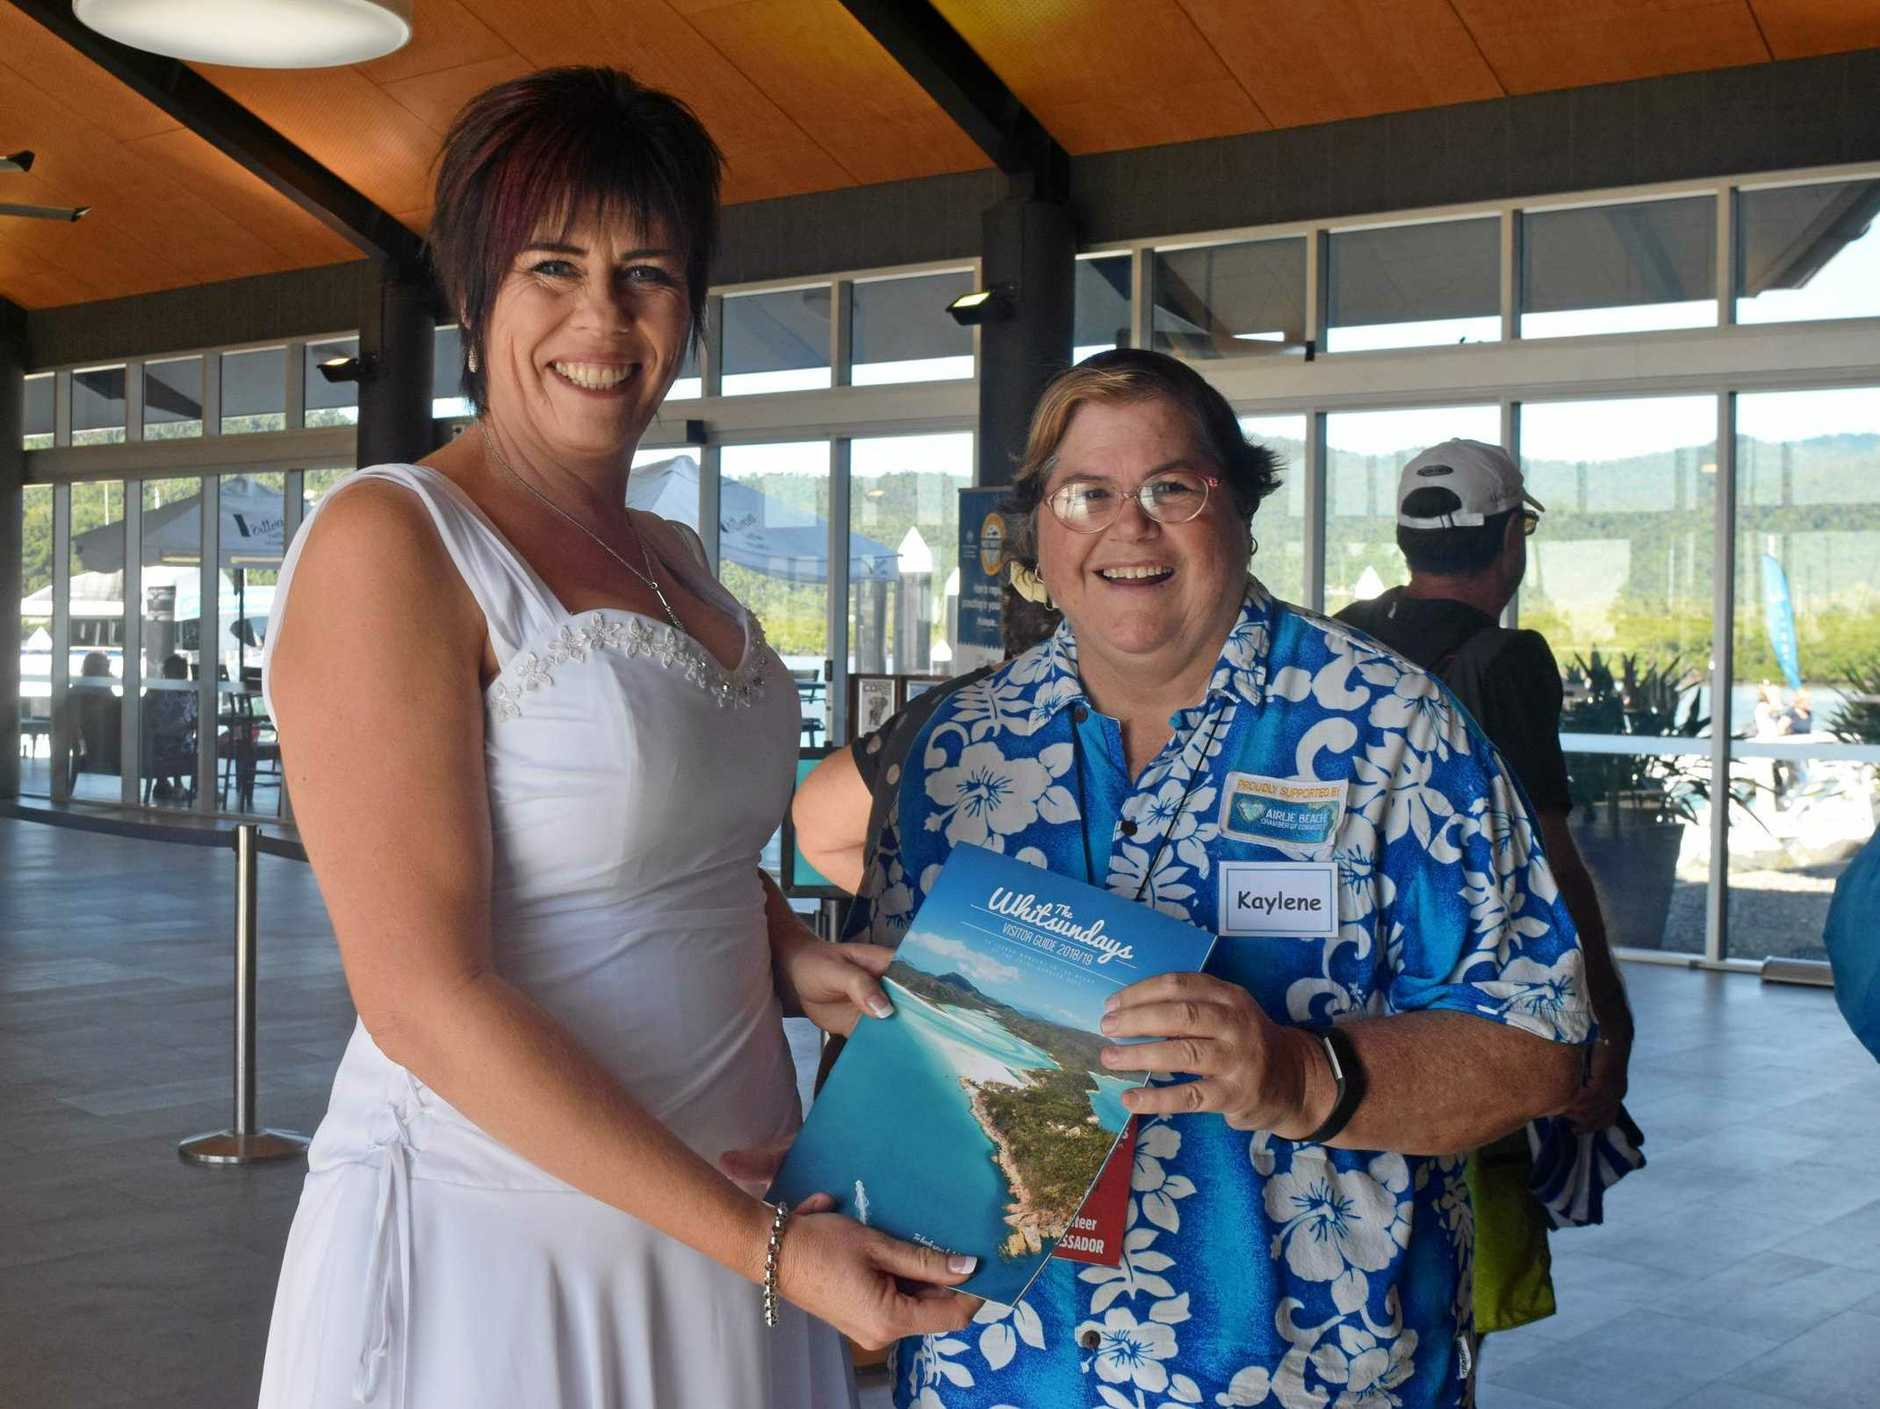 THE PEOPLE YOU MEET: Kaylene Giles is the newest face with the Airlie Beach Cruise Ship Ambassadors, and she met bride Vanessa Davidson on duty.